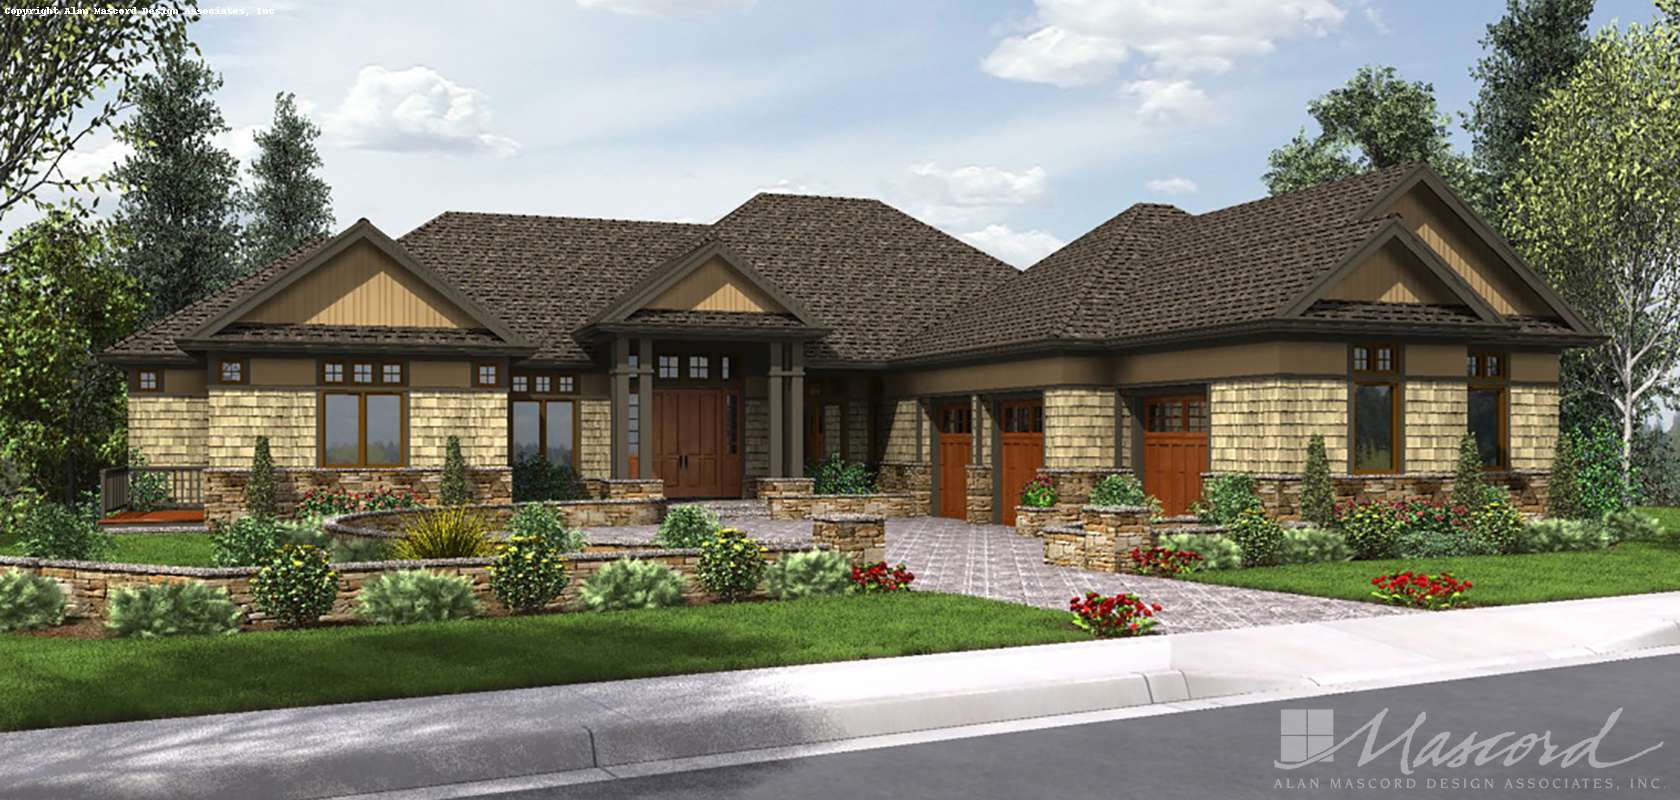 Mascord House Plan 2468: The Wickham